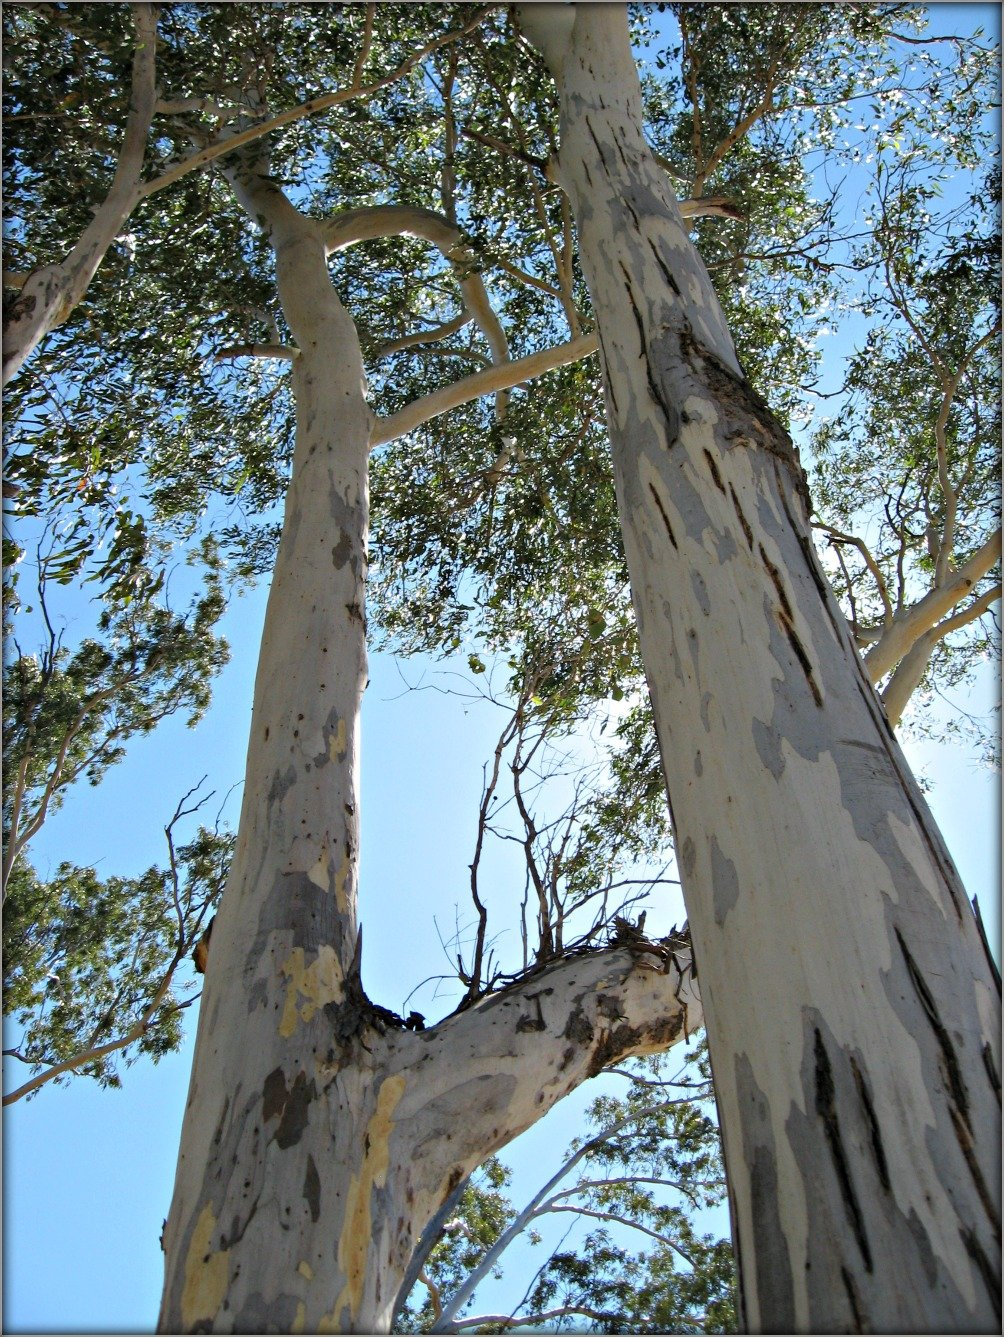 Air filled with the sent of Eucalypt Trees